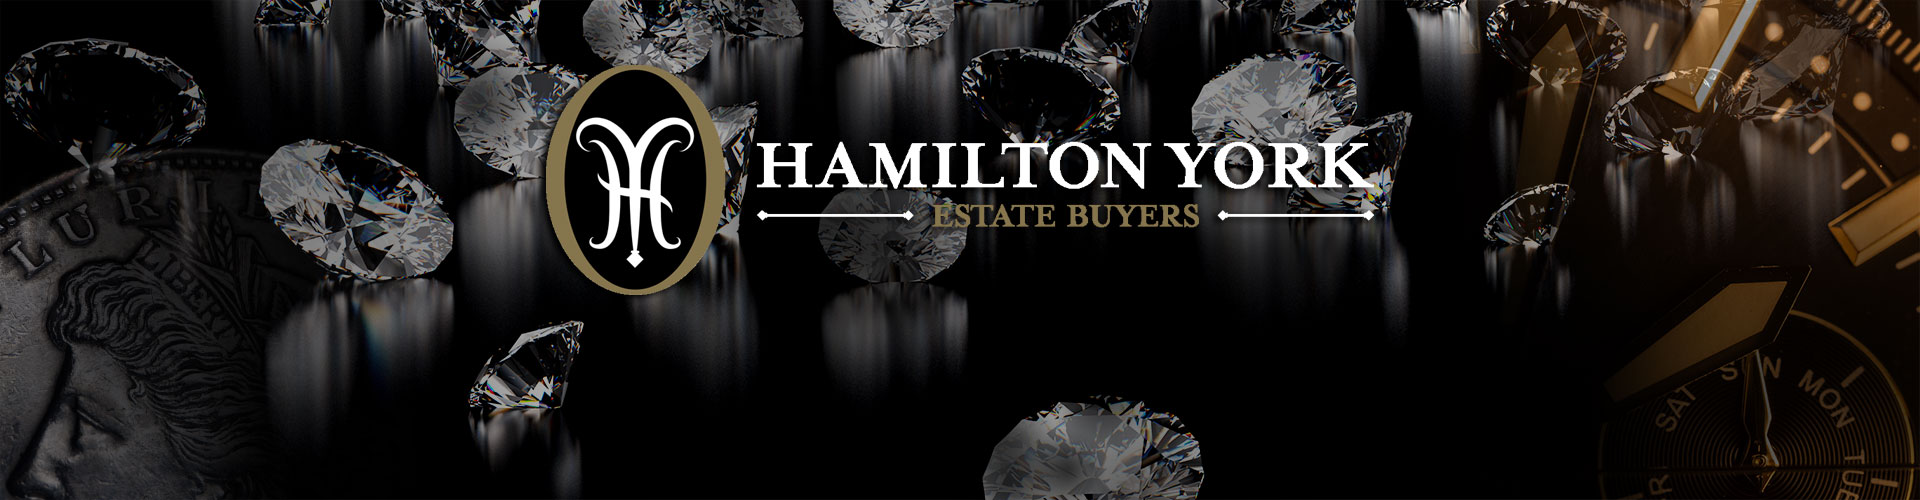 Picture of Hamilton York Estate Buyers logo